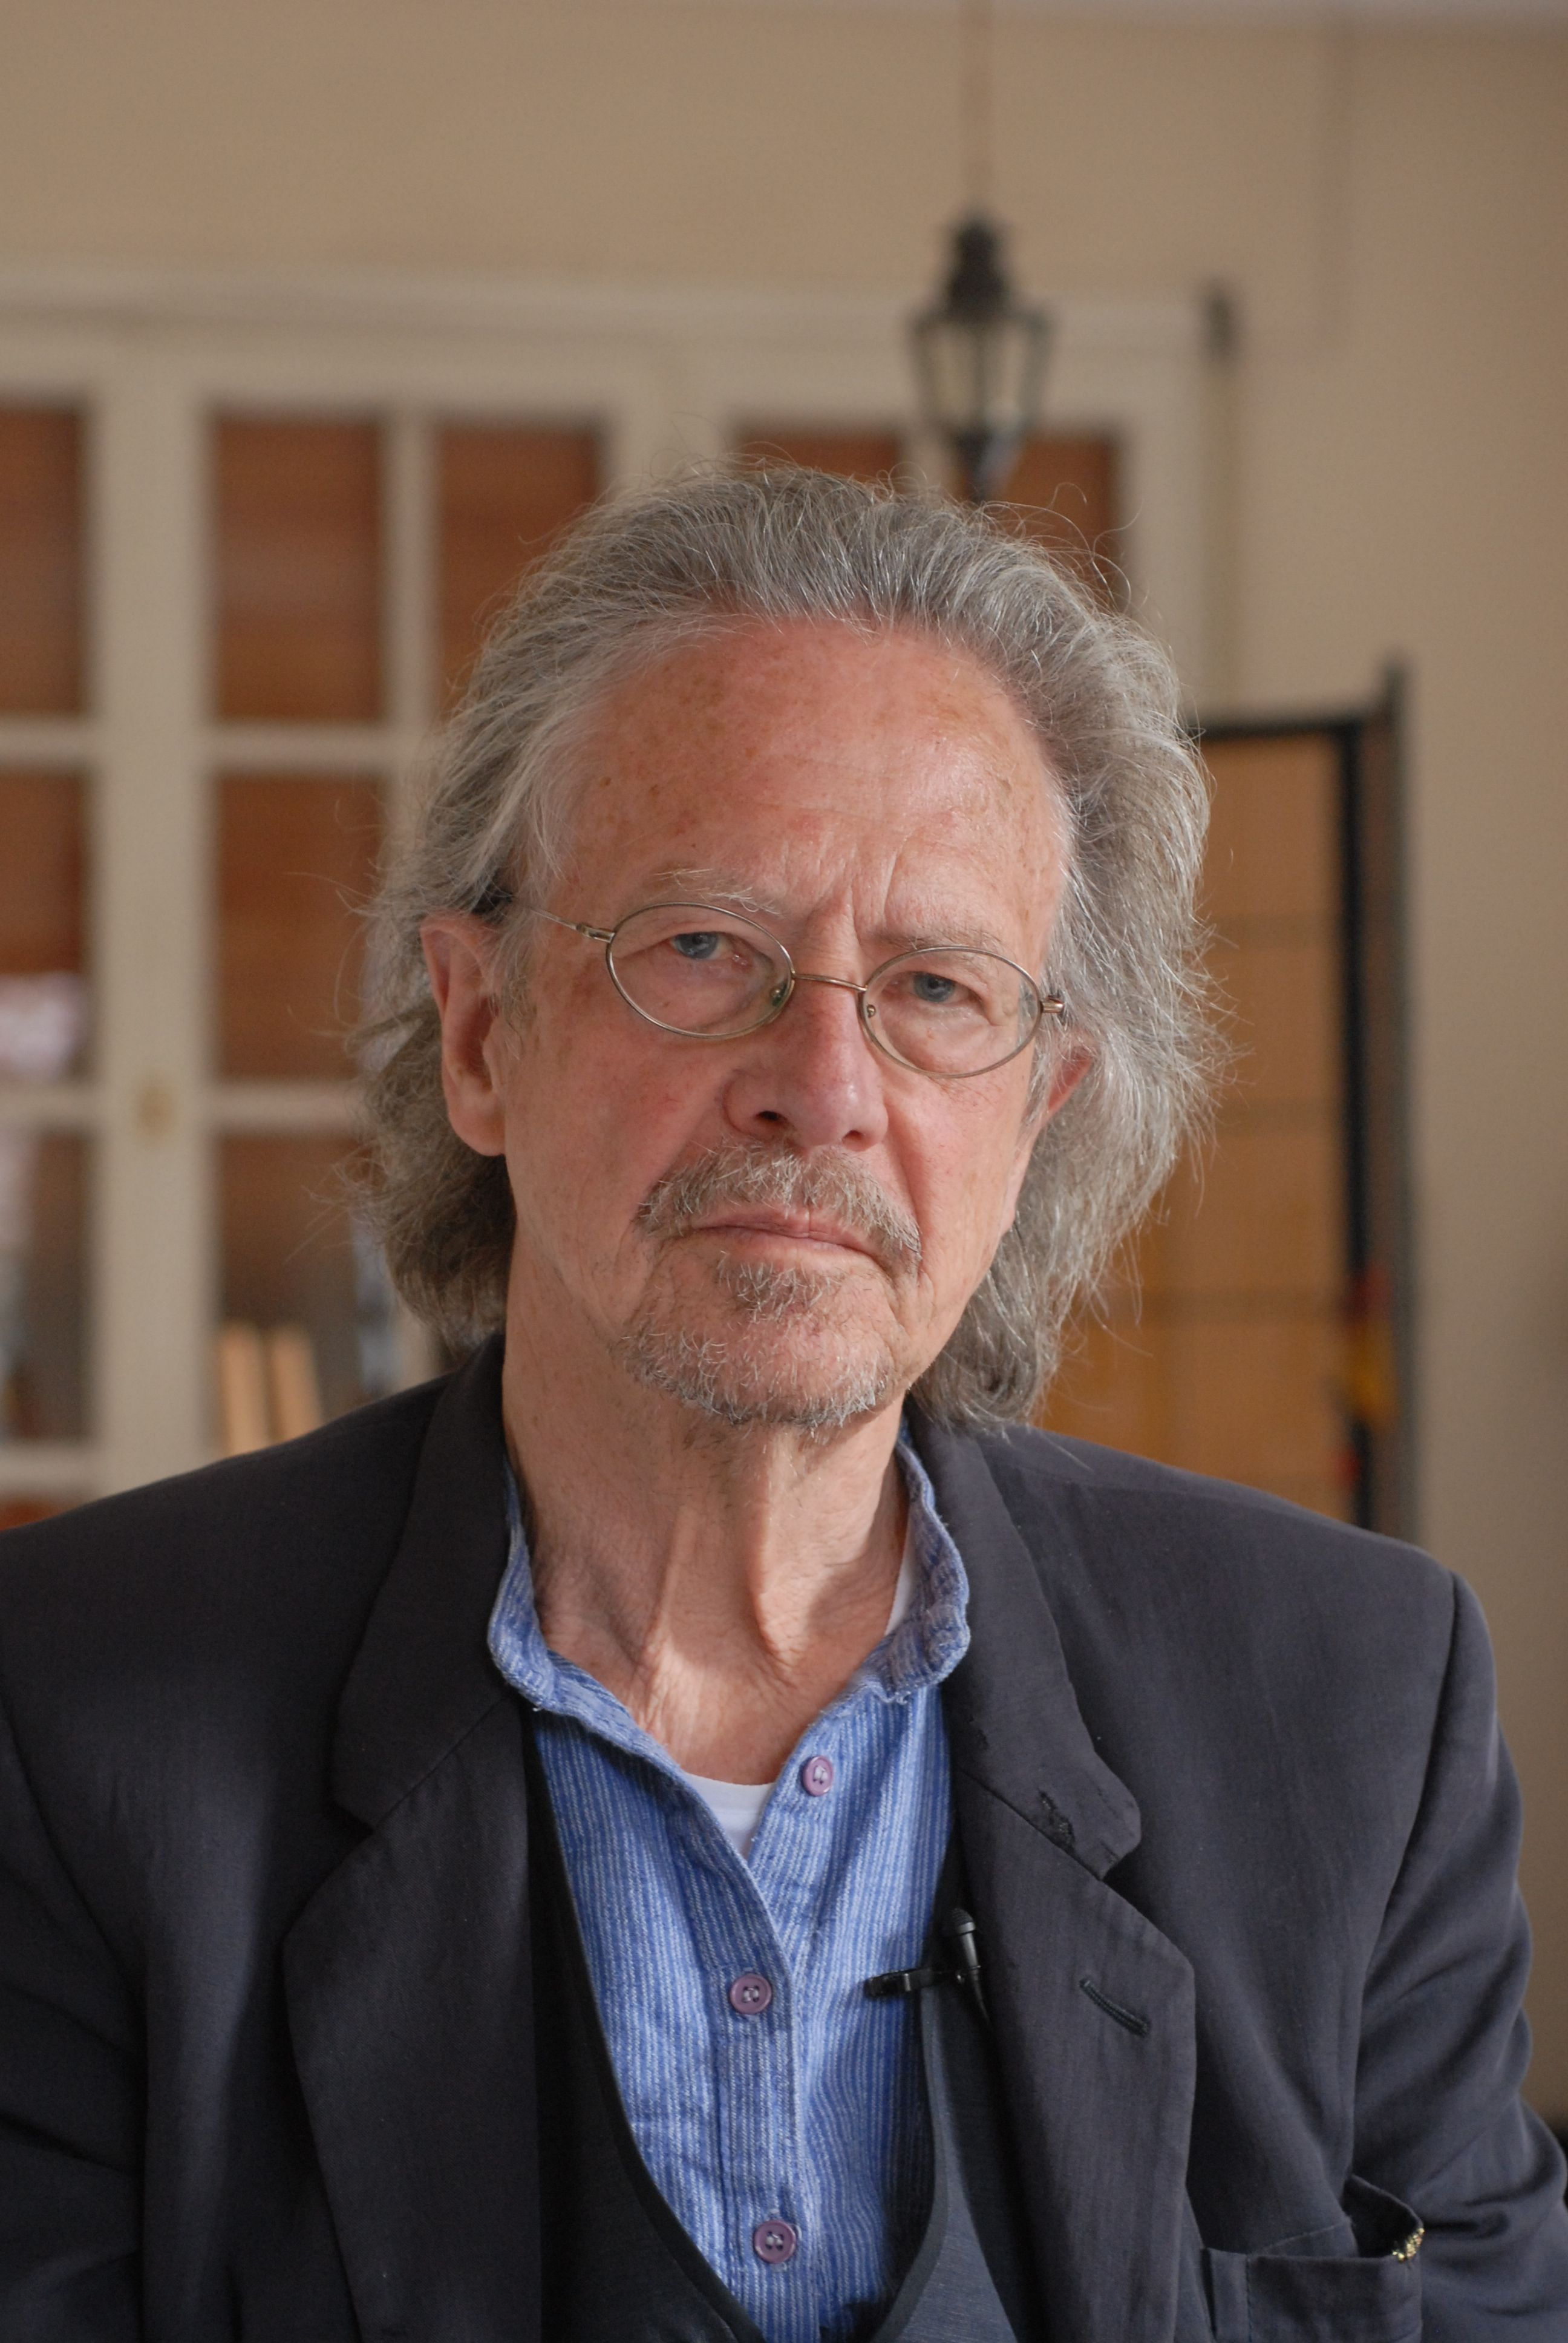 Peter Handke Named Winner of the 2014 International Ibsen Award